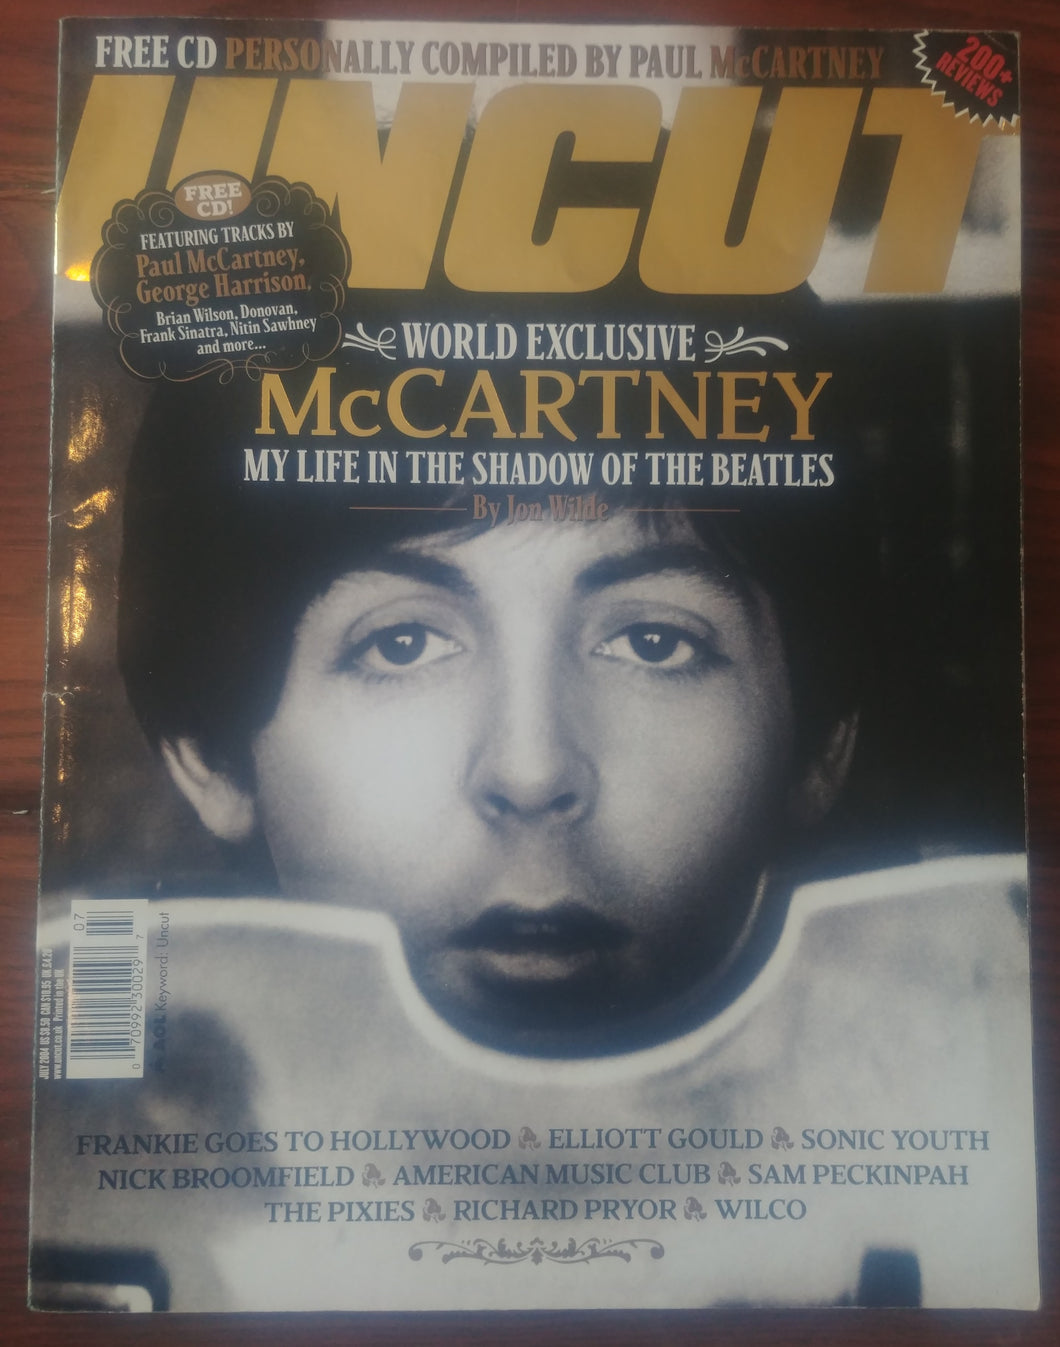 Uncut - Juillet 2004 / Paul McCARTNEY